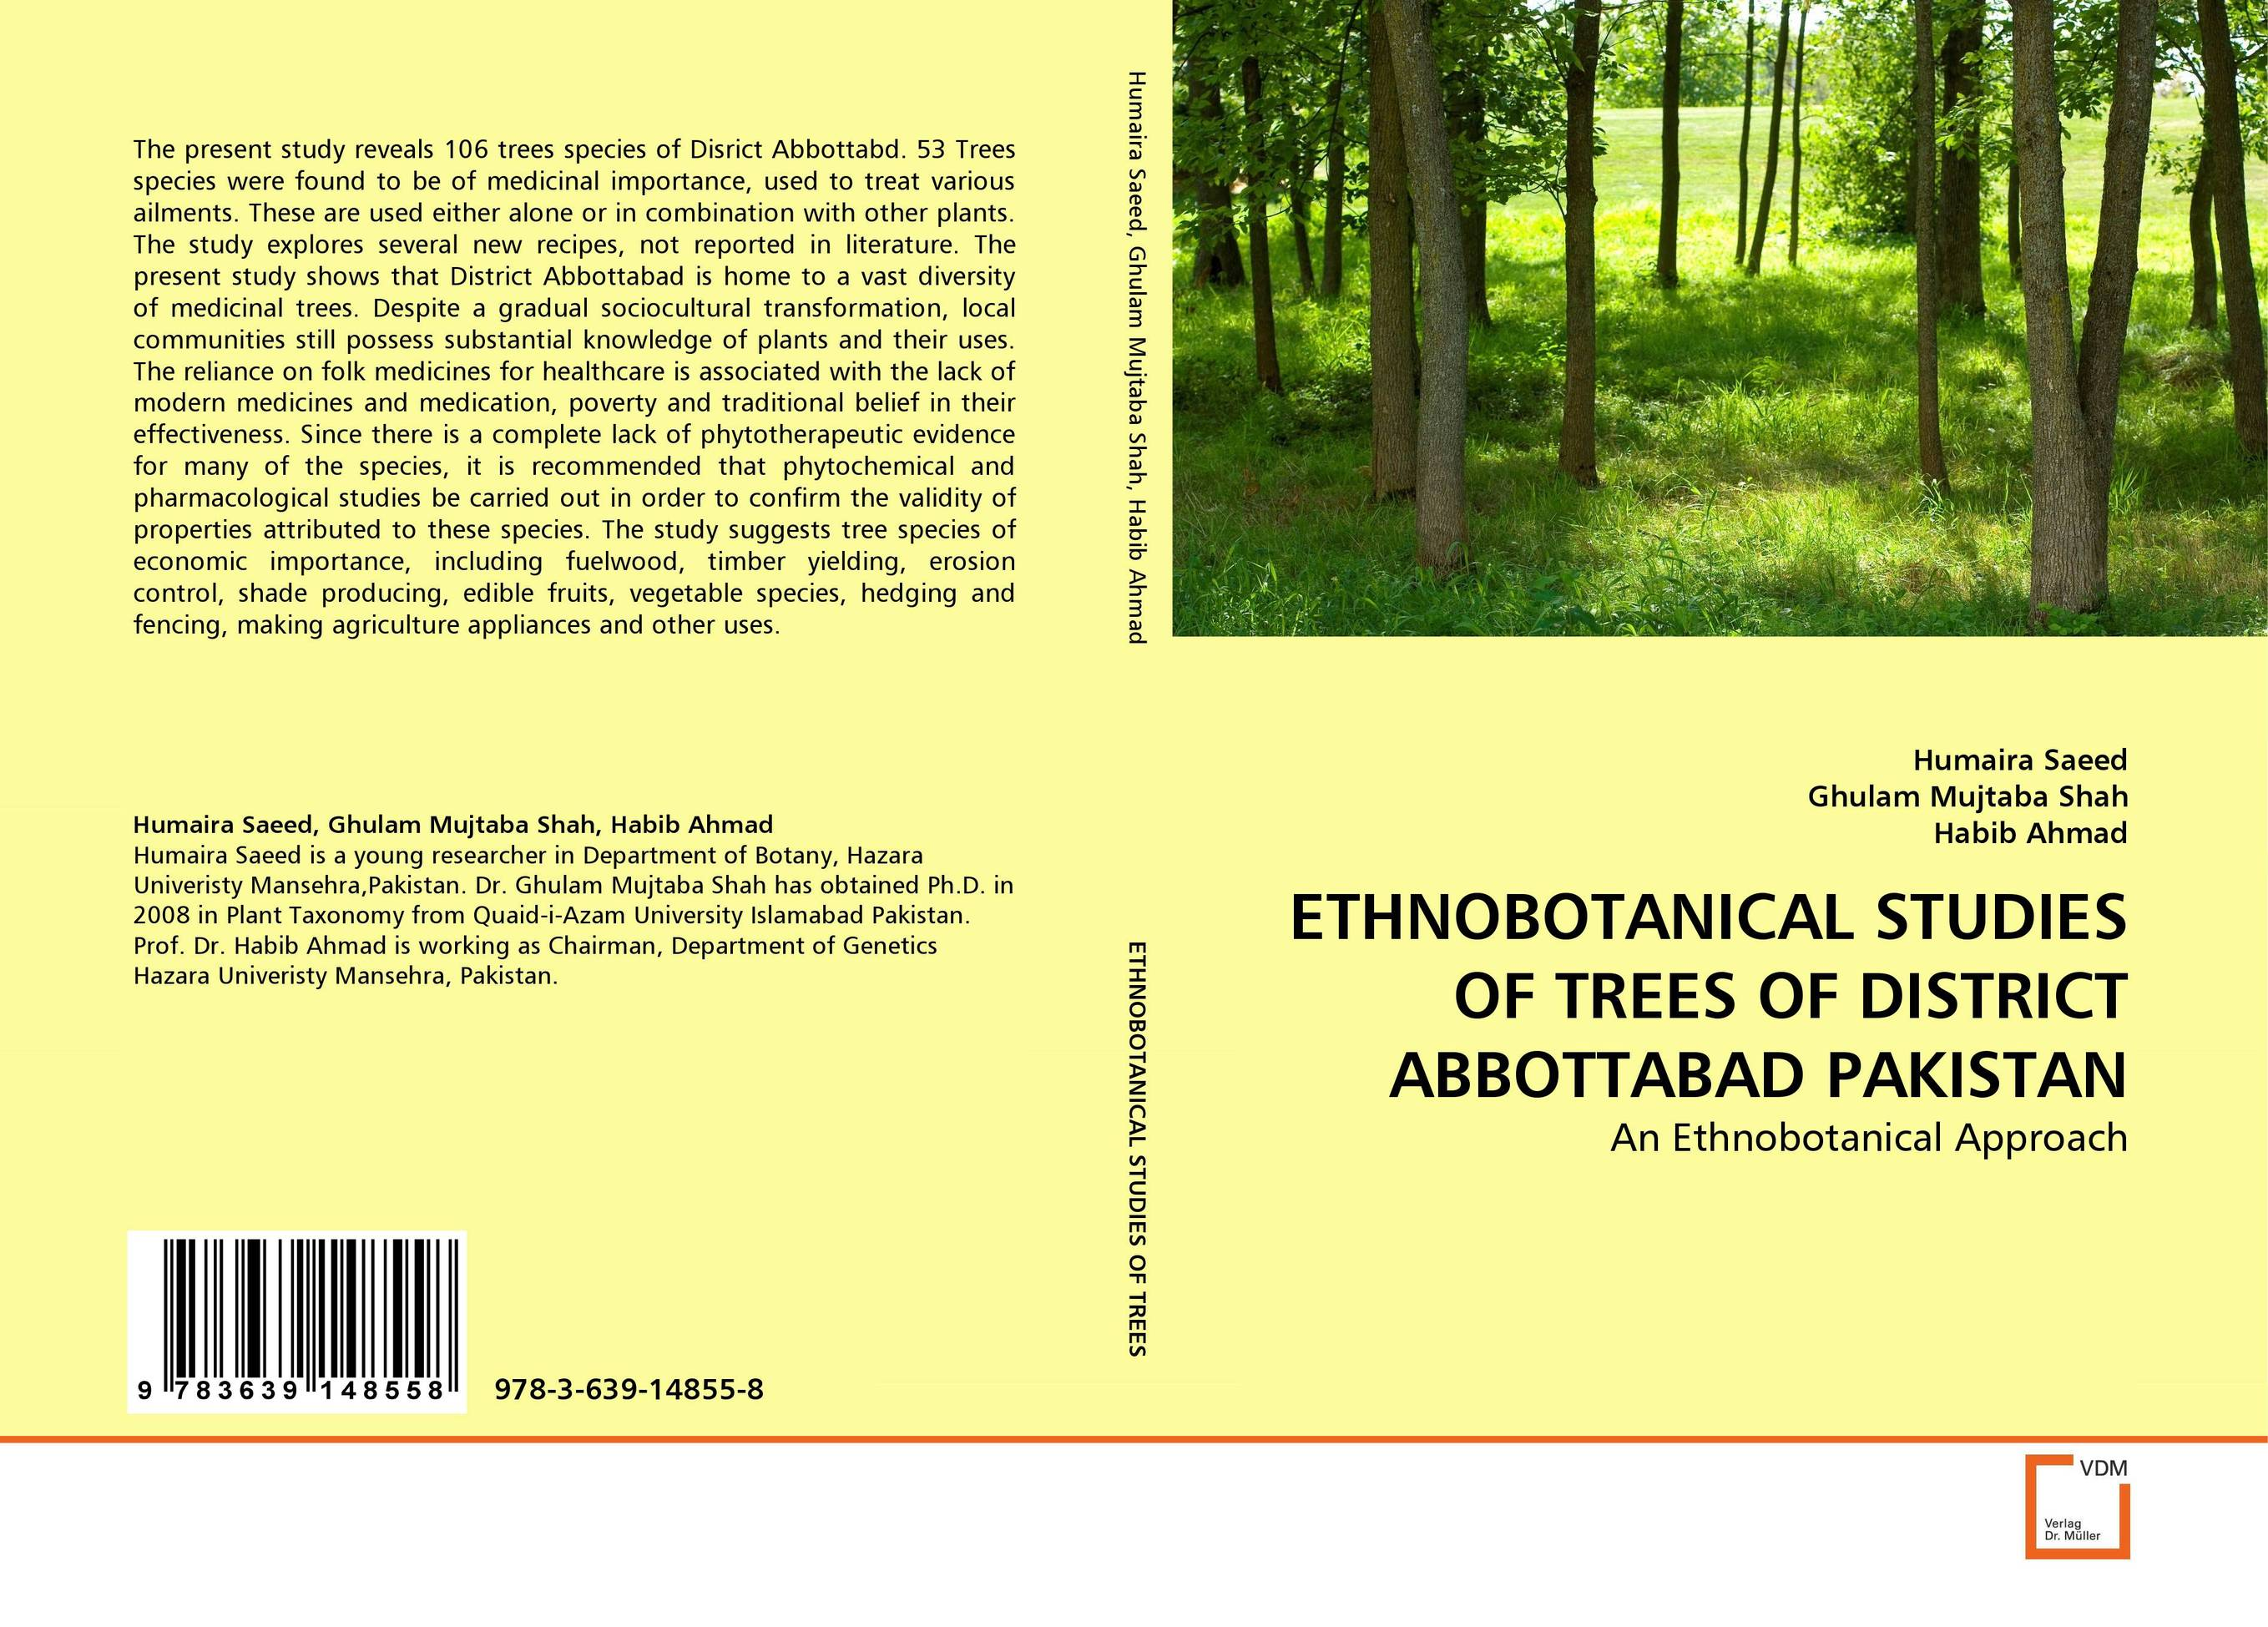 ETHNOBOTANICAL STUDIES OF TREES OF DISTRICT ABBOTTABAD PAKISTAN the trees trees the garden of jane delawney lp